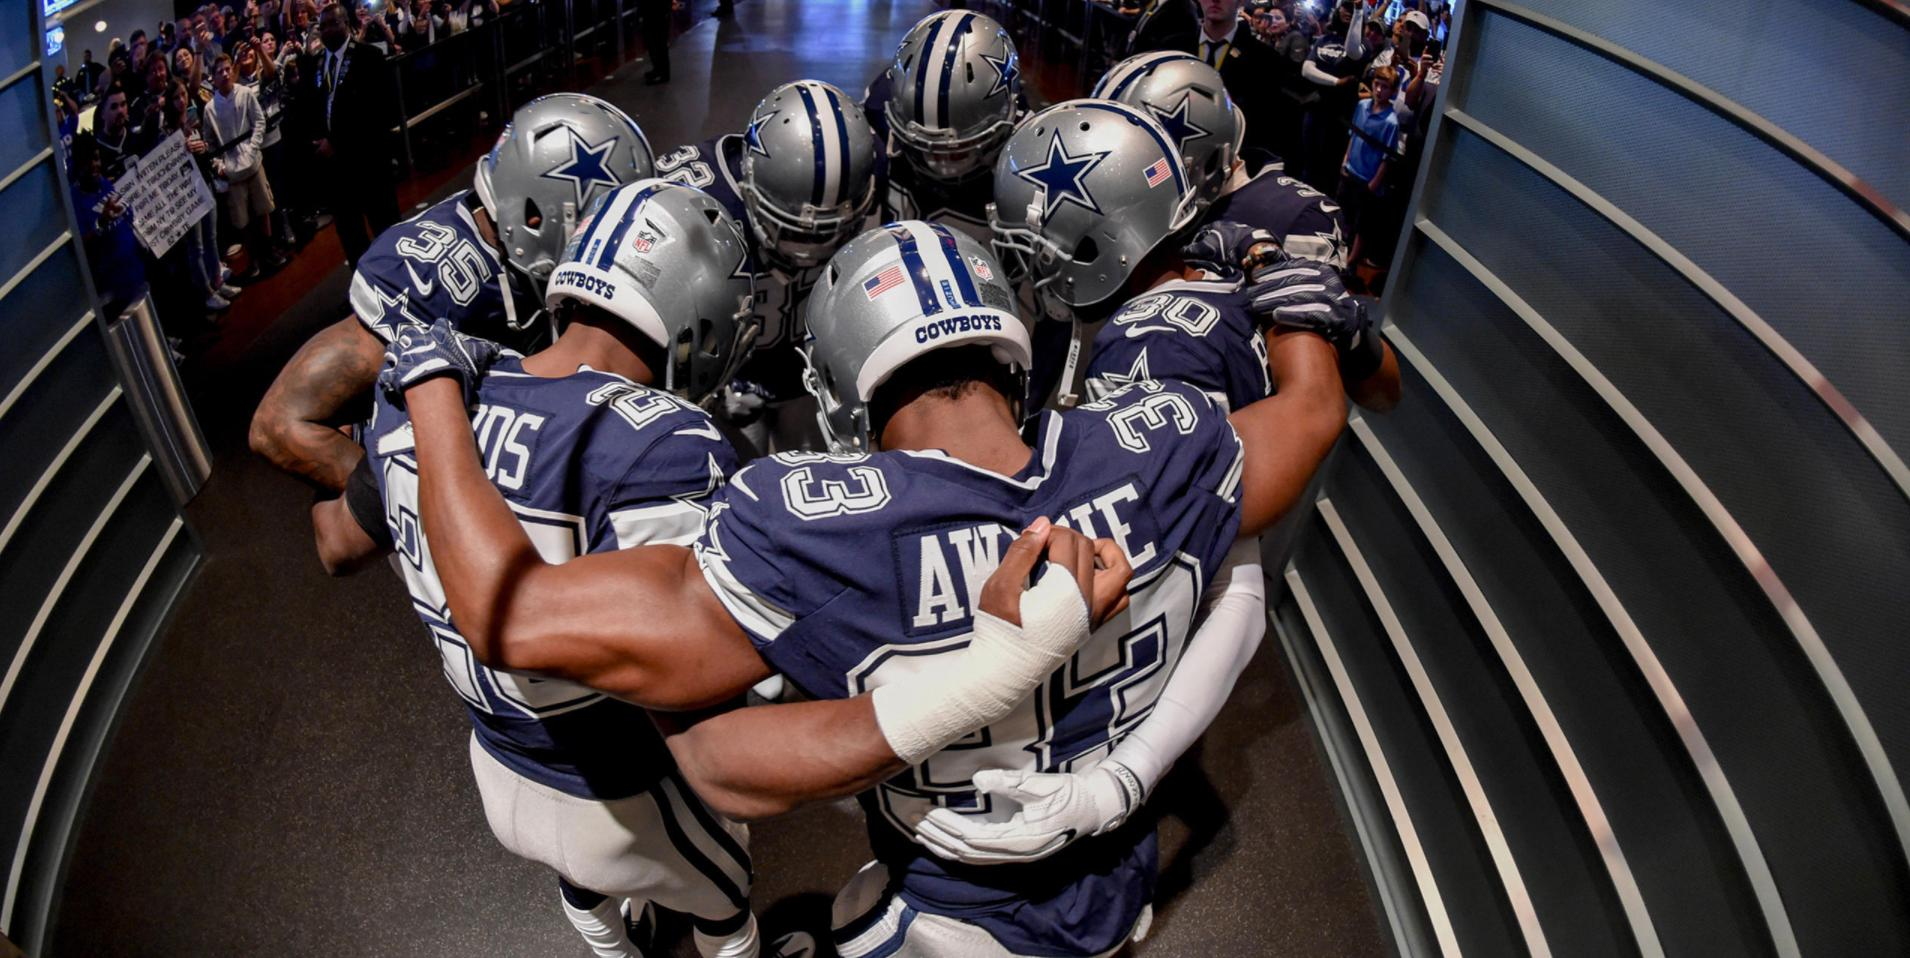 Mailbag: Keeping An Eye On Future Contracts? Re-Stocking The Depth At Safety?  Answers: https://t.co/SA5uH0mKQp https://t.co/cG5Ve68tof